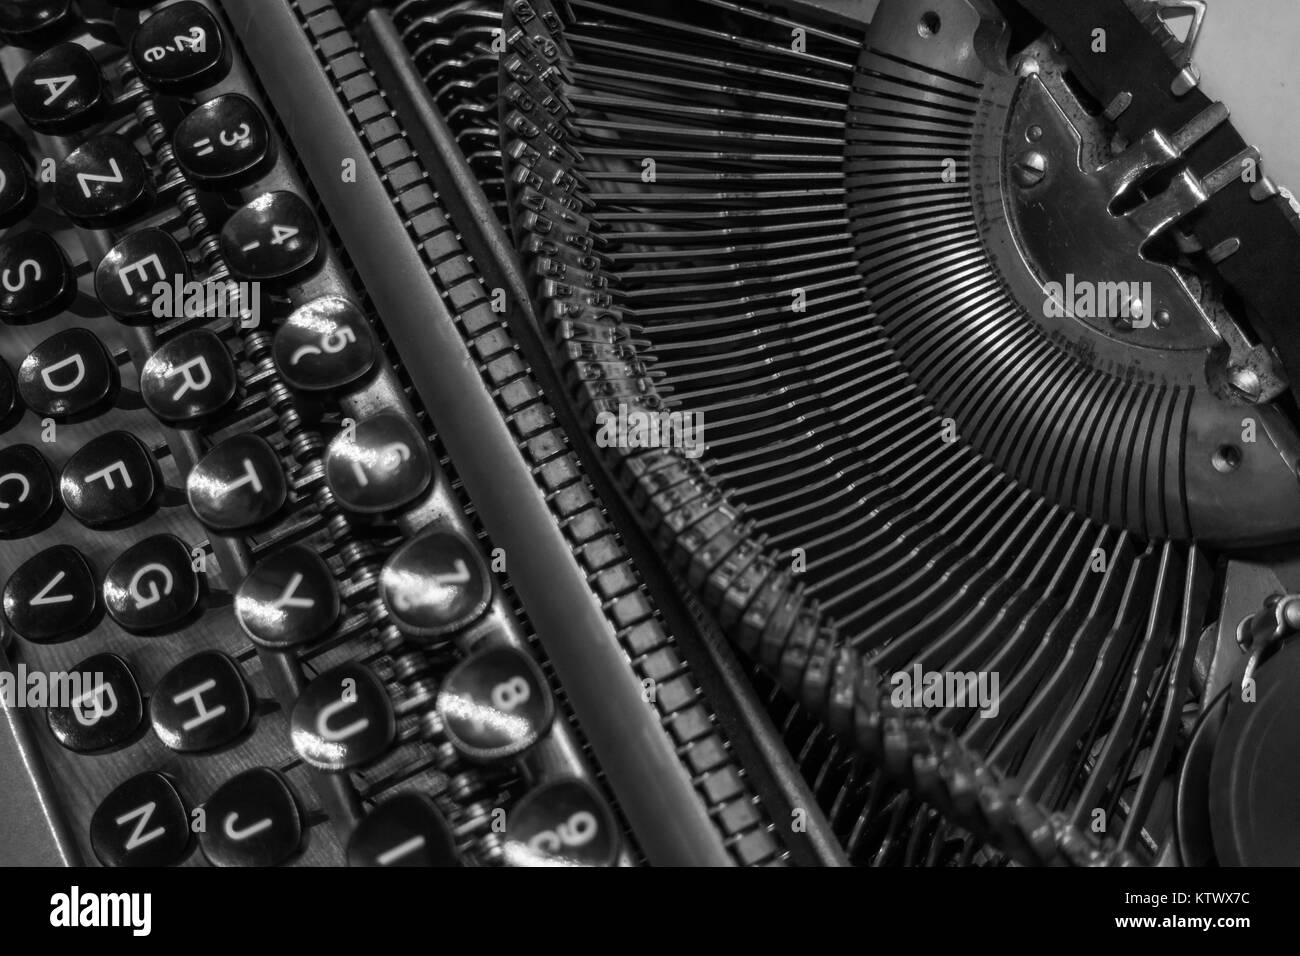 Vintage Typewriter Black and White Stock s & Alamy